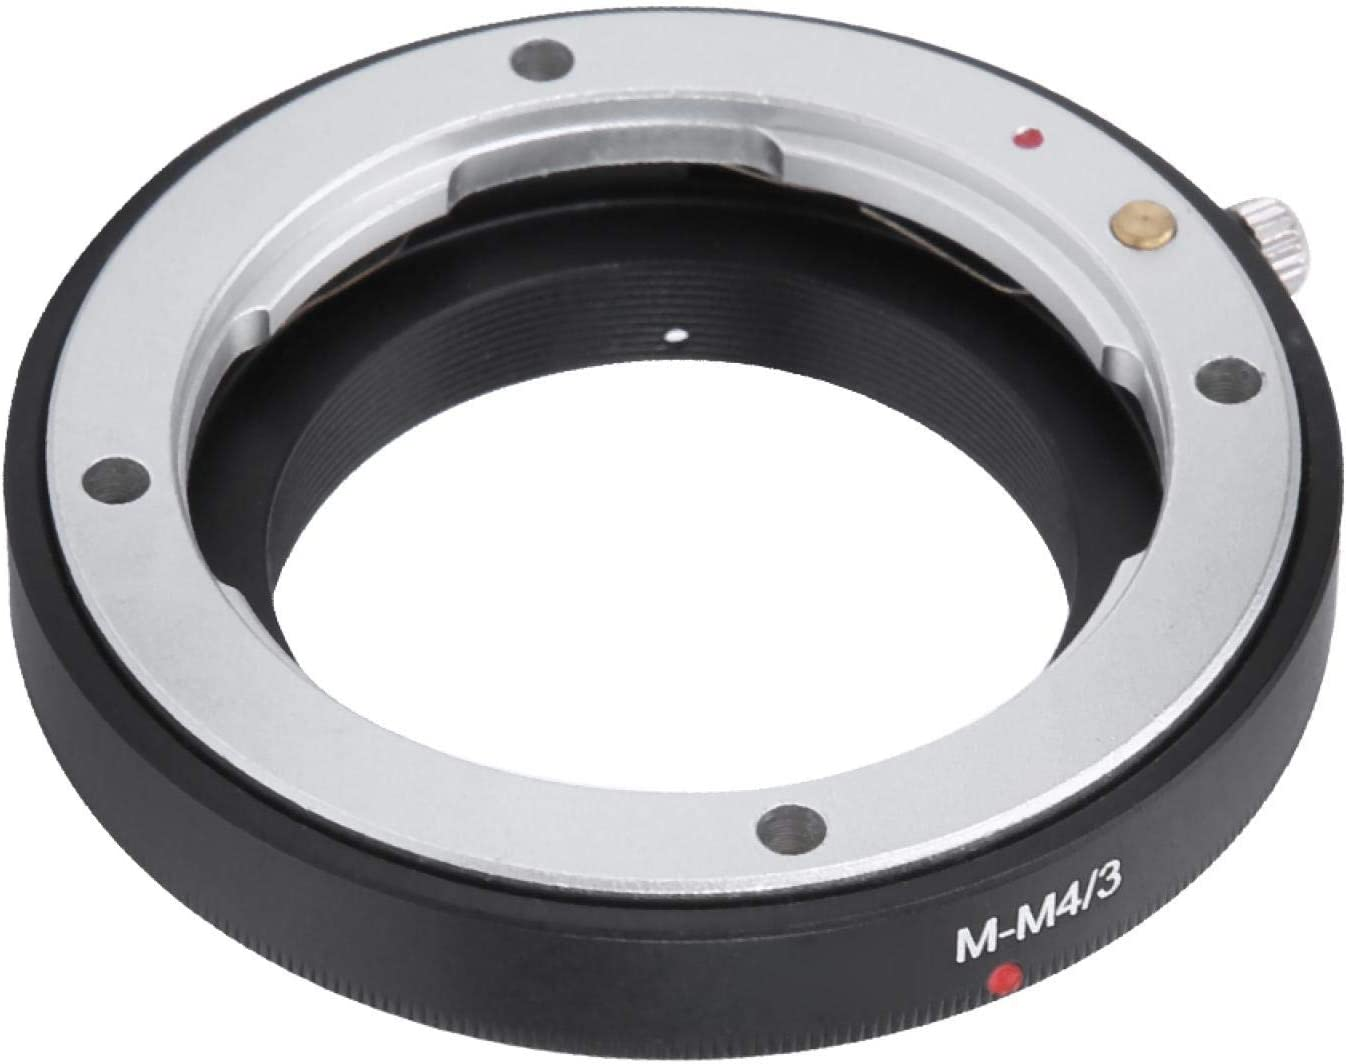 Adapter Luxury goods Ring Cheap Lens for Metal Mount